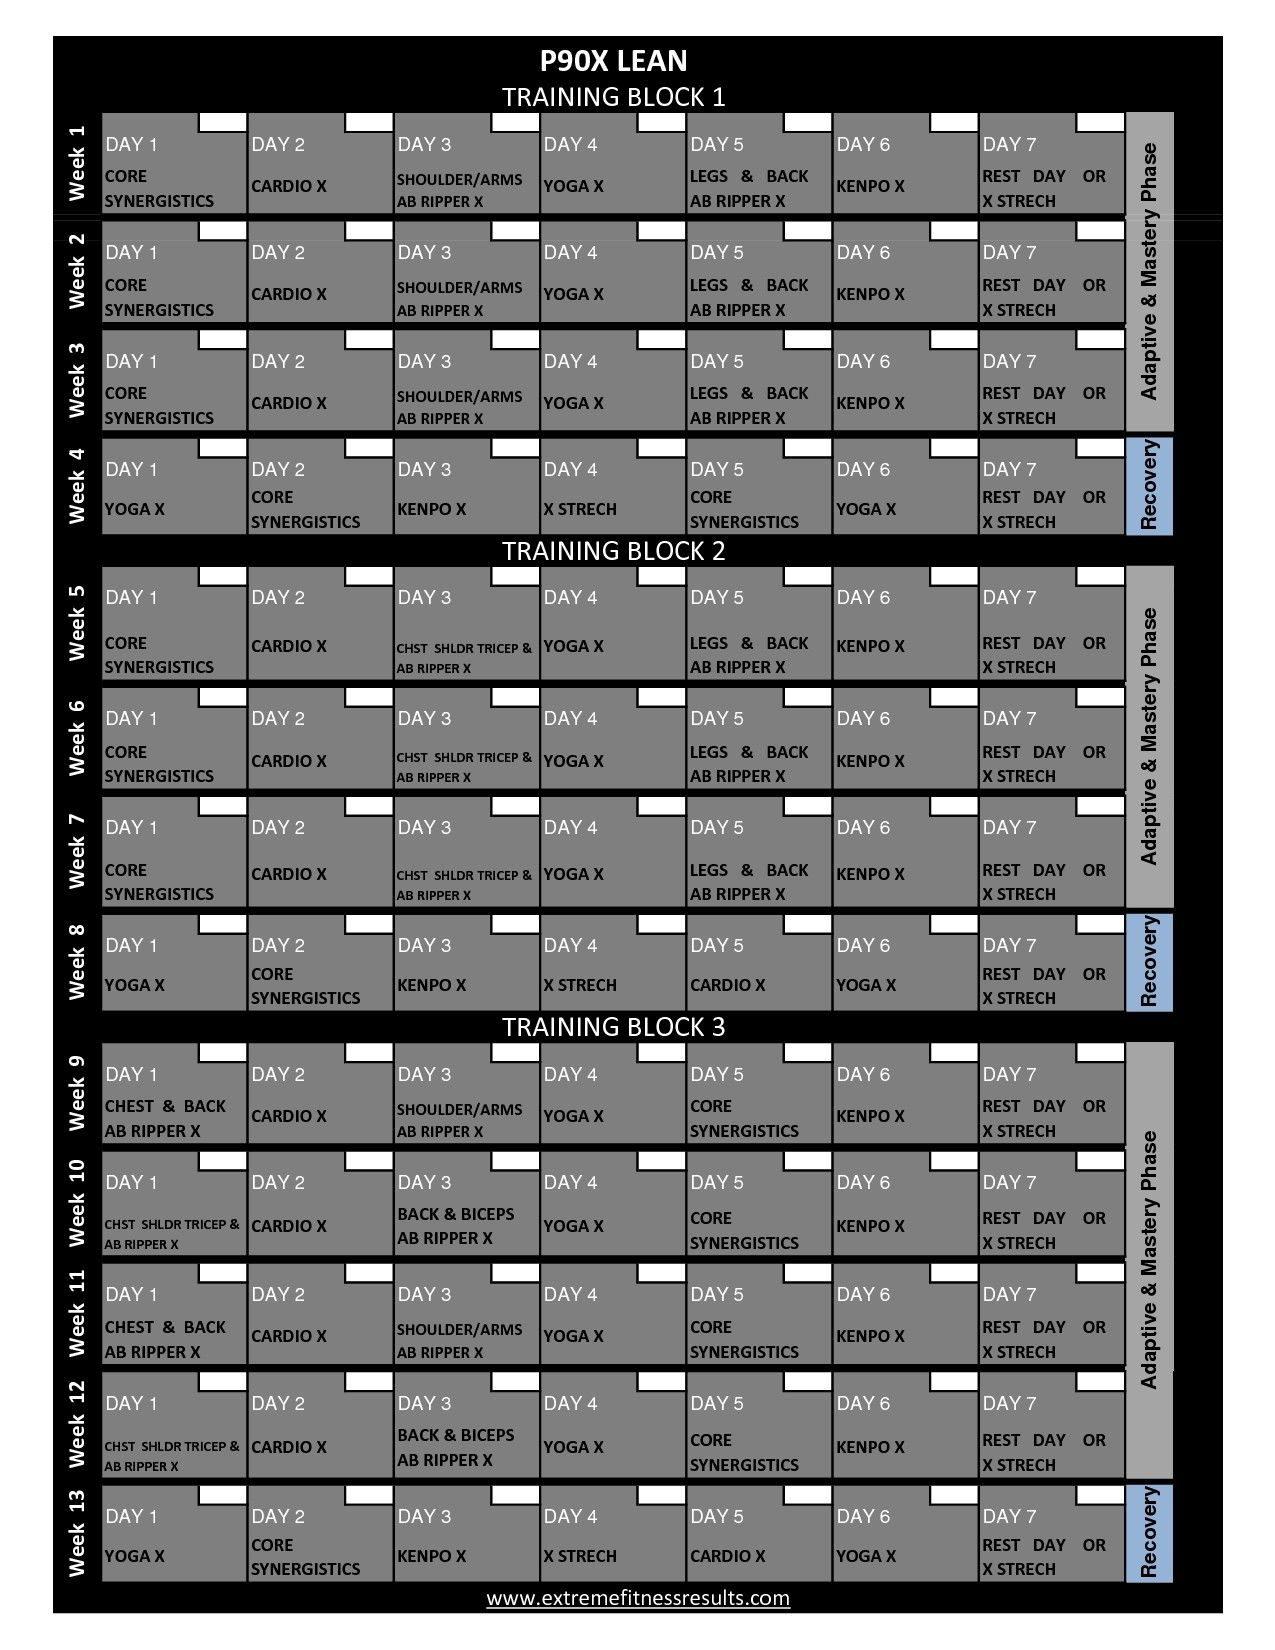 P90X Workout Calendar Printable (With Images) | P90X Workout With Regard To Supreme 90 Day Calendar Pdf